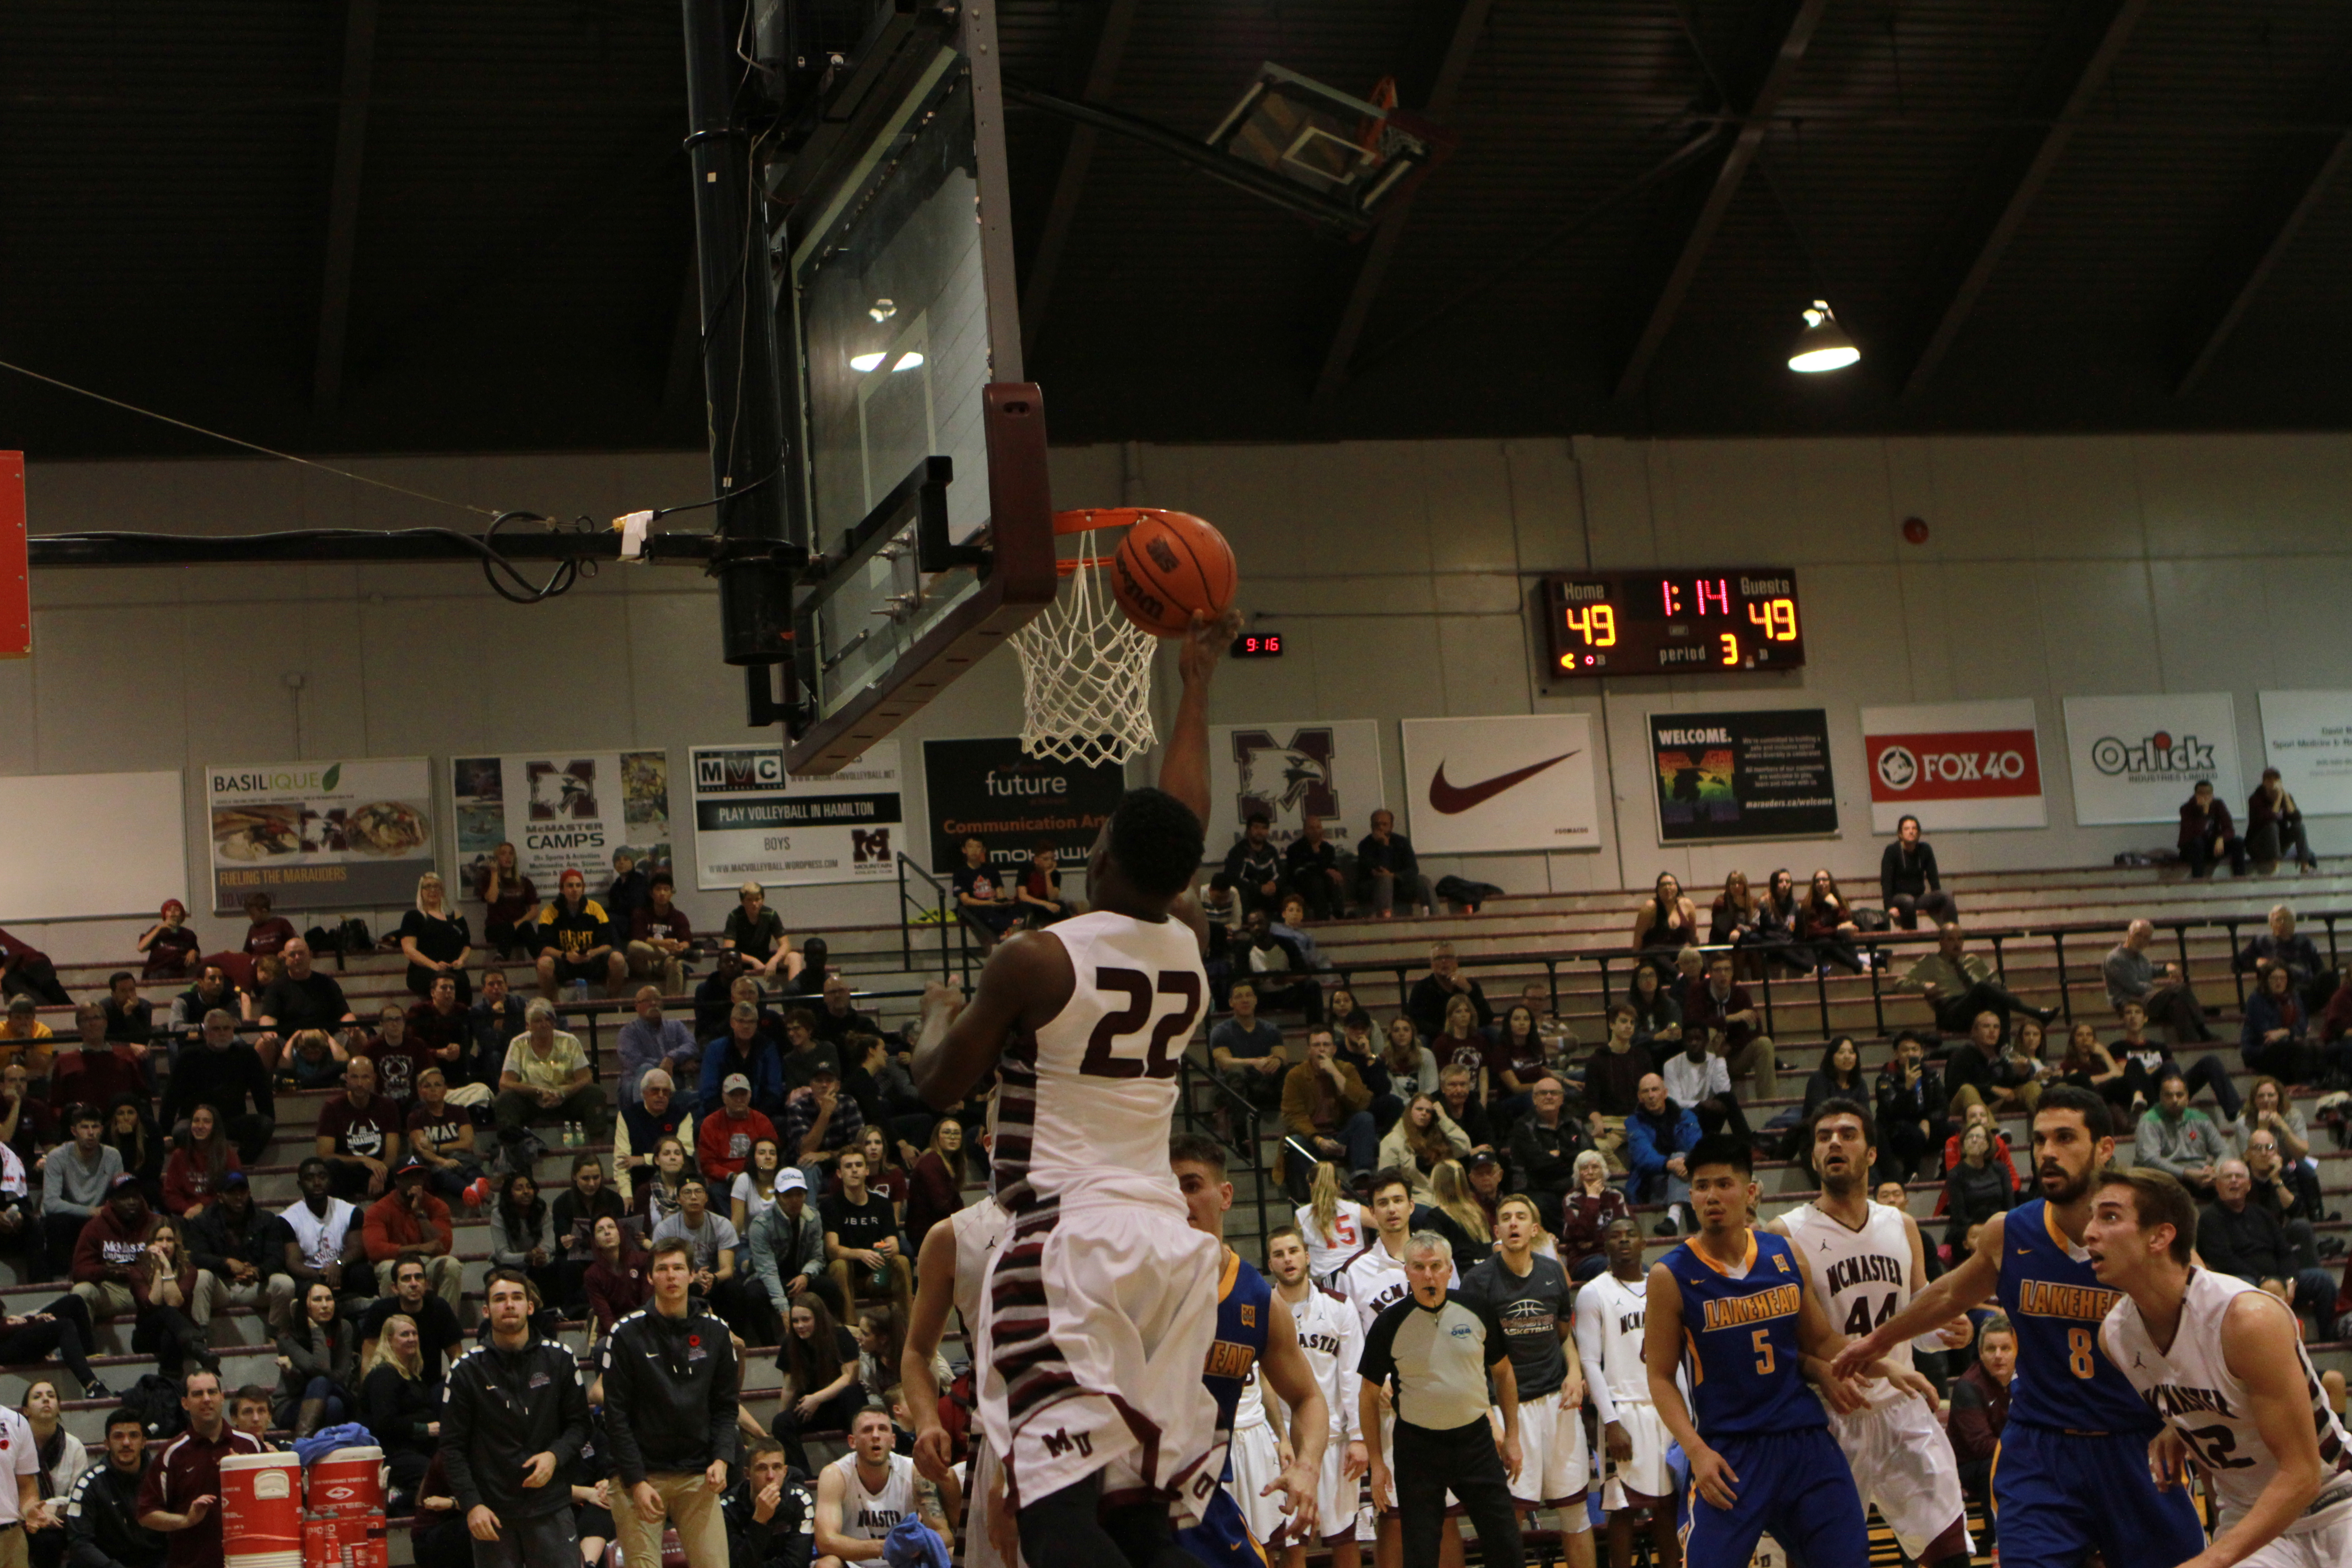 Room to grow for Mac men The men's basketball team is through the toughest part of their schedule and look to improve their defence in 2017